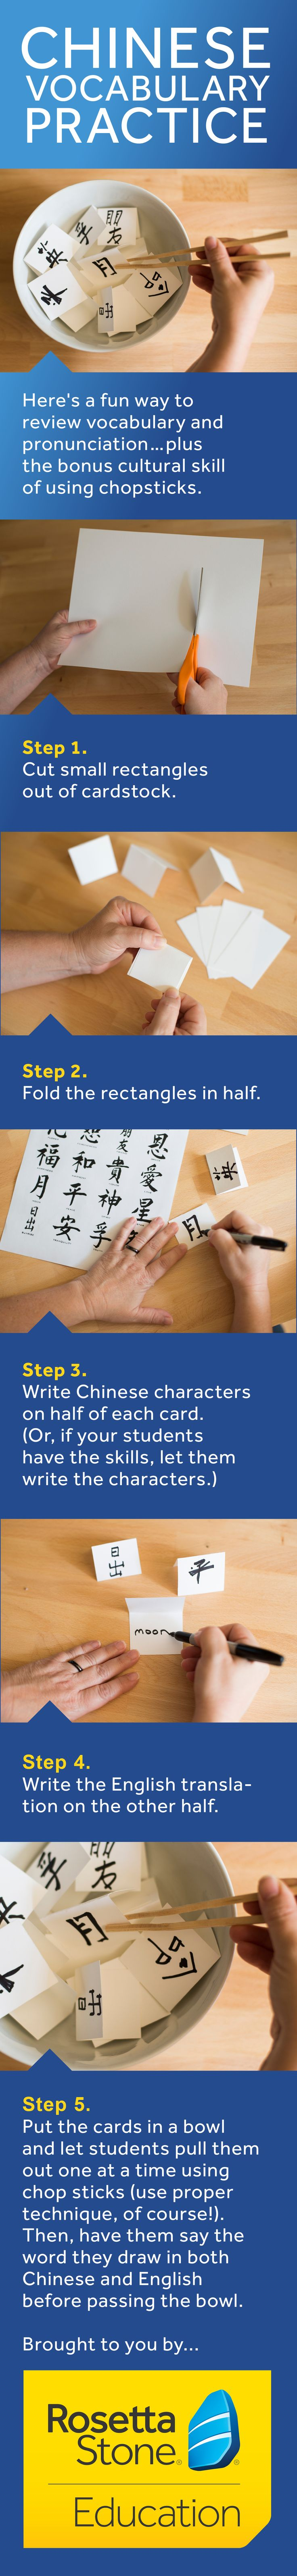 Teaching Chinese?  Teach vocabulary (and proper eating technique!) with this fun chopstick lesson.  This is perfect for teaching food vocab!